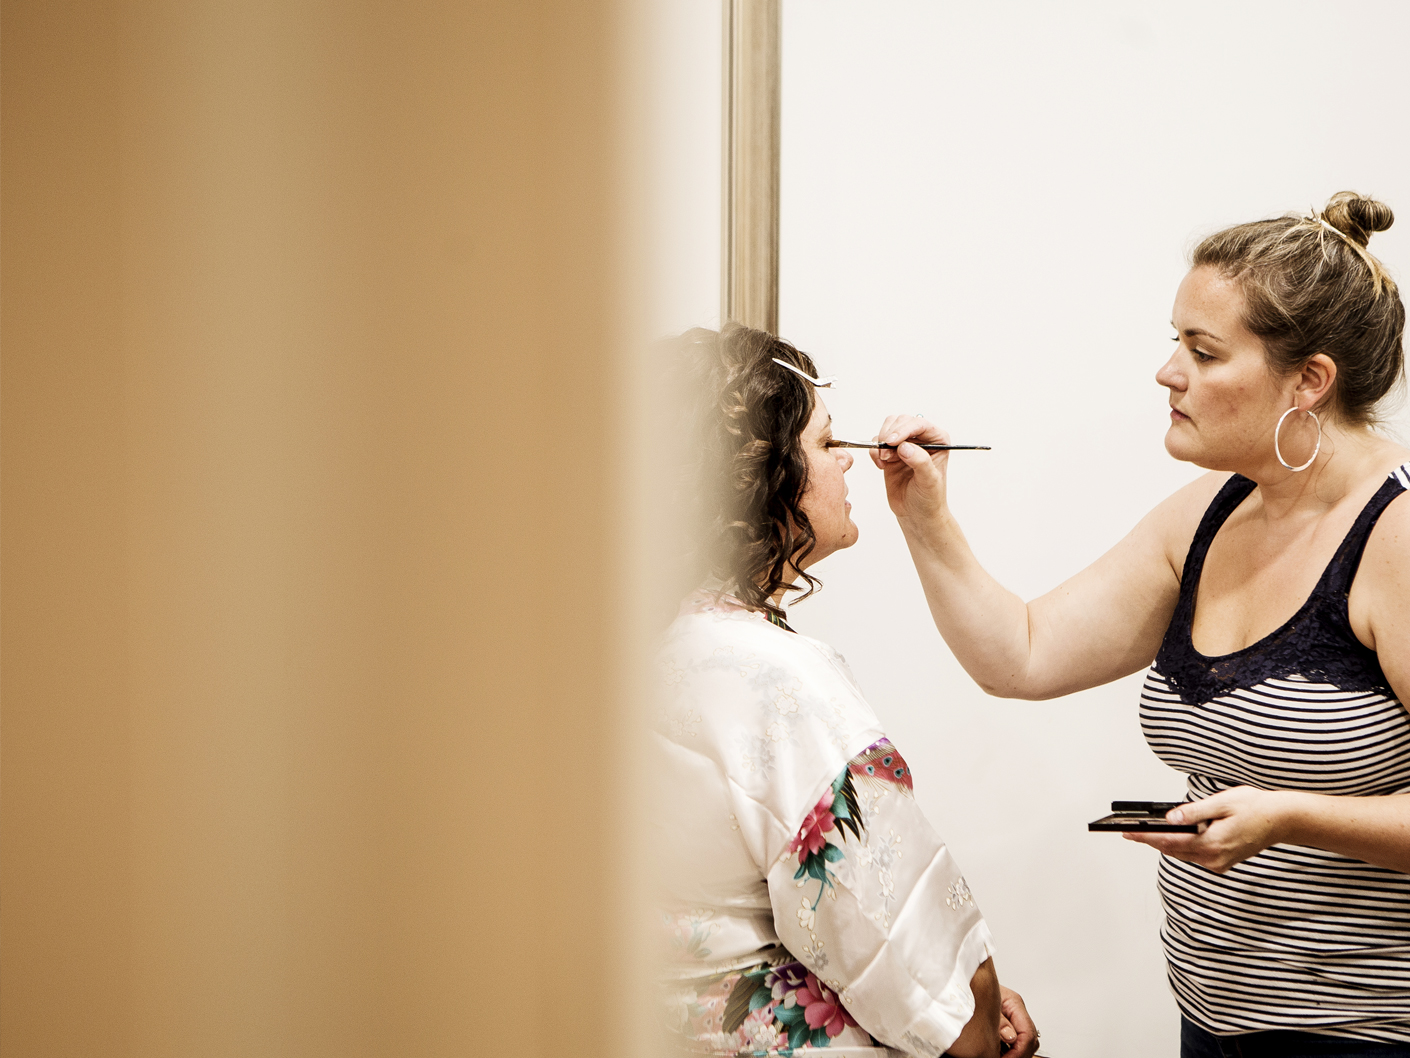 wedding-photography-of-the-bride-getting-ready-at-the-cheshire-wedding-venue-merrydale-manor